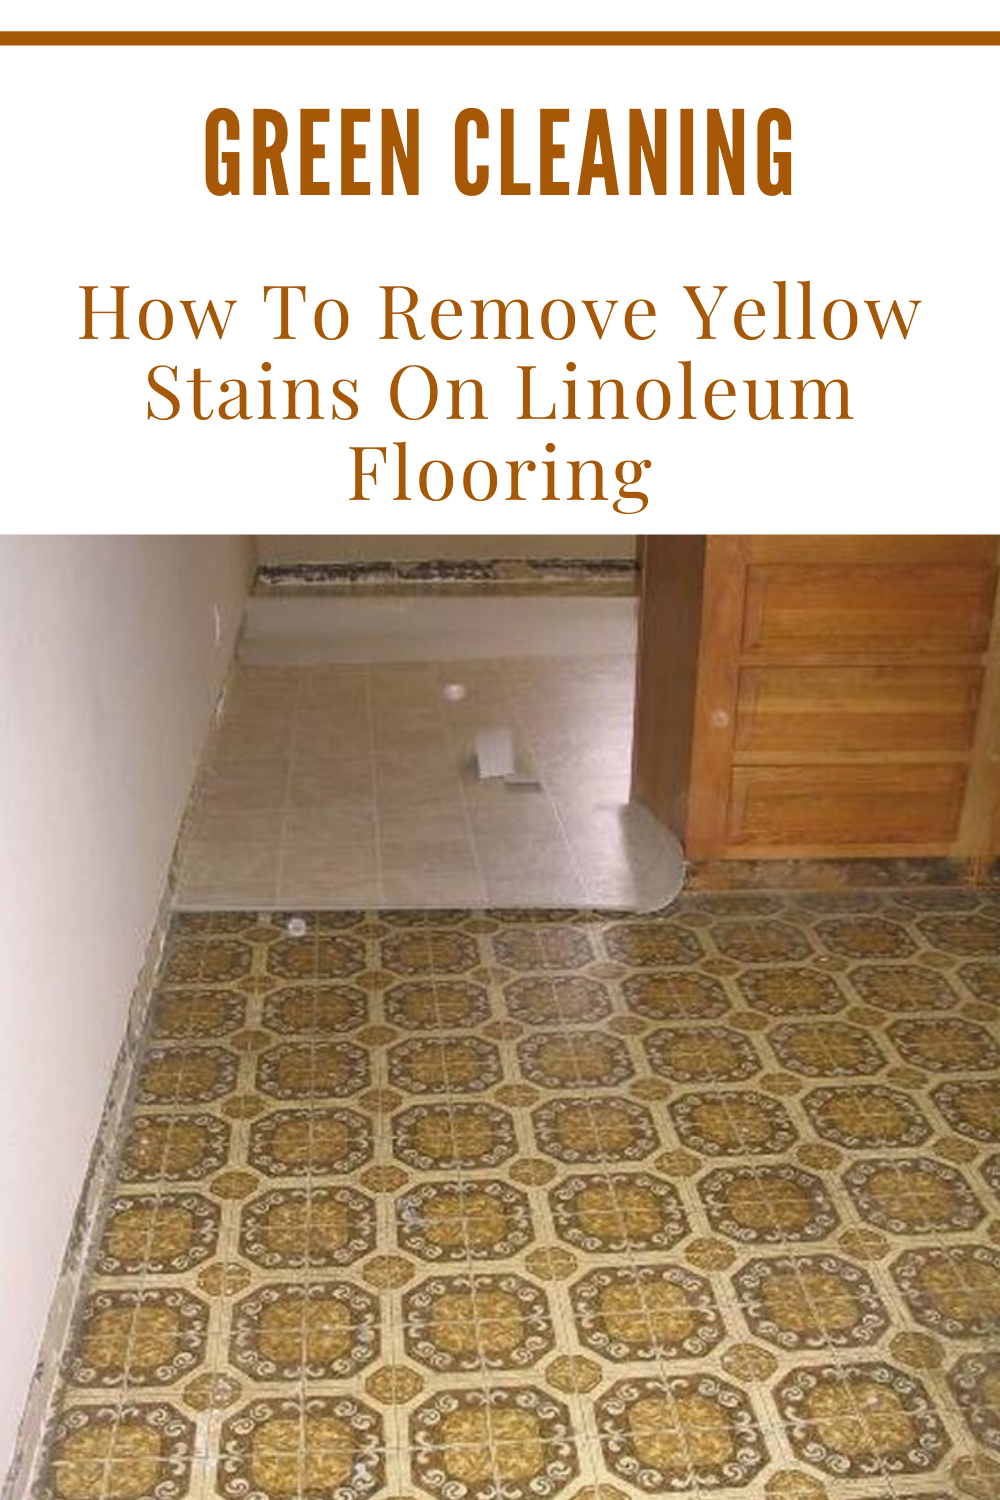 Green Cleaning: How To Remove Yellow Stains On Linoleum Flooring | XCleaning.net - Your Cleaning Tips | Remove Yellow Stains, Linoleum Flooring, Flooring